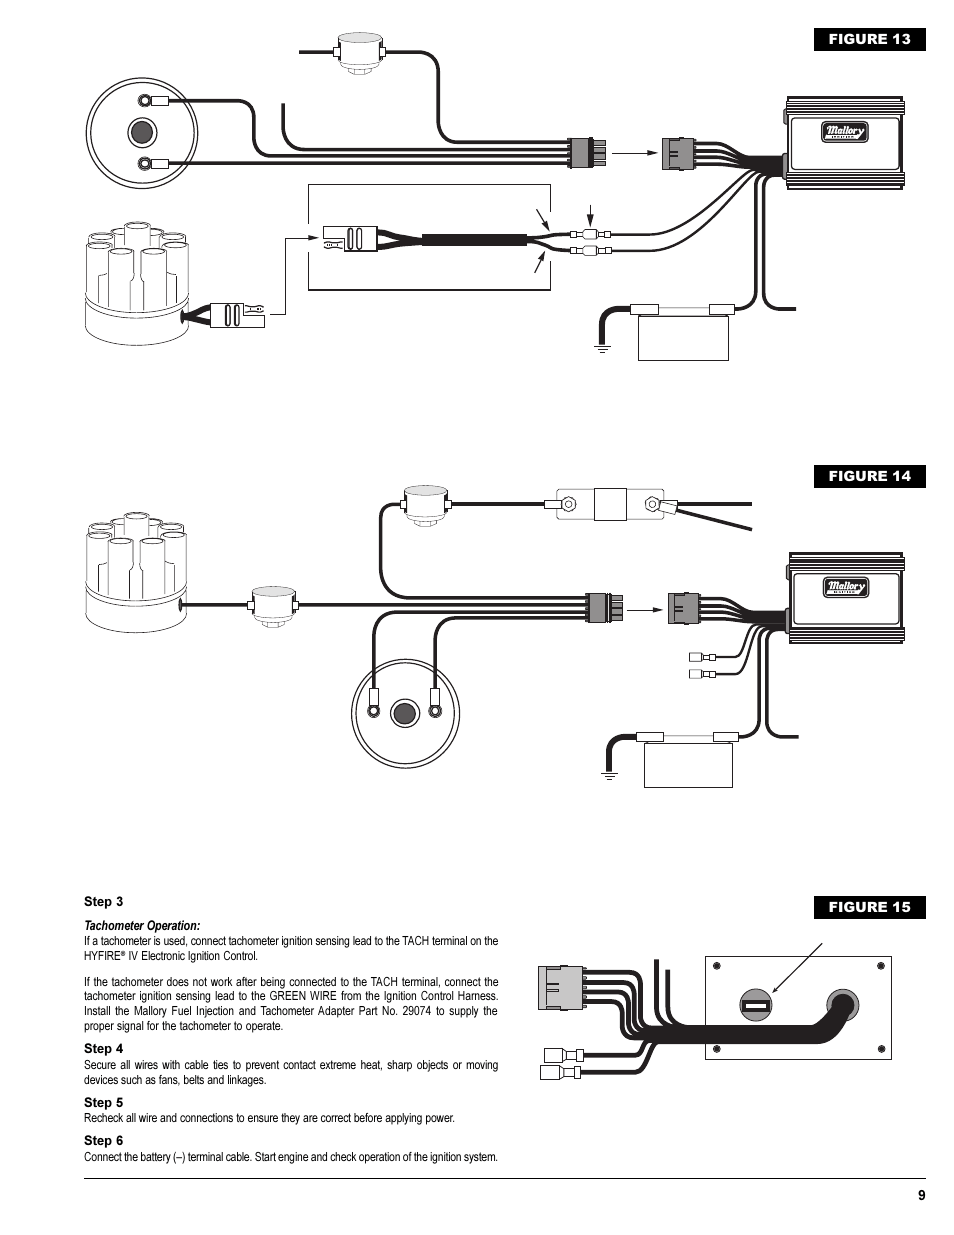 mallory ignition mallory hyfire iv series ignition system 692_697 page9?resize\\\\\\\\\\\\\\\\\\\=665%2C861 audiobahn aw1251t wiring diagram gandul 45 77 79 119 on aftermarket engine wiring harness at suagrazia.org